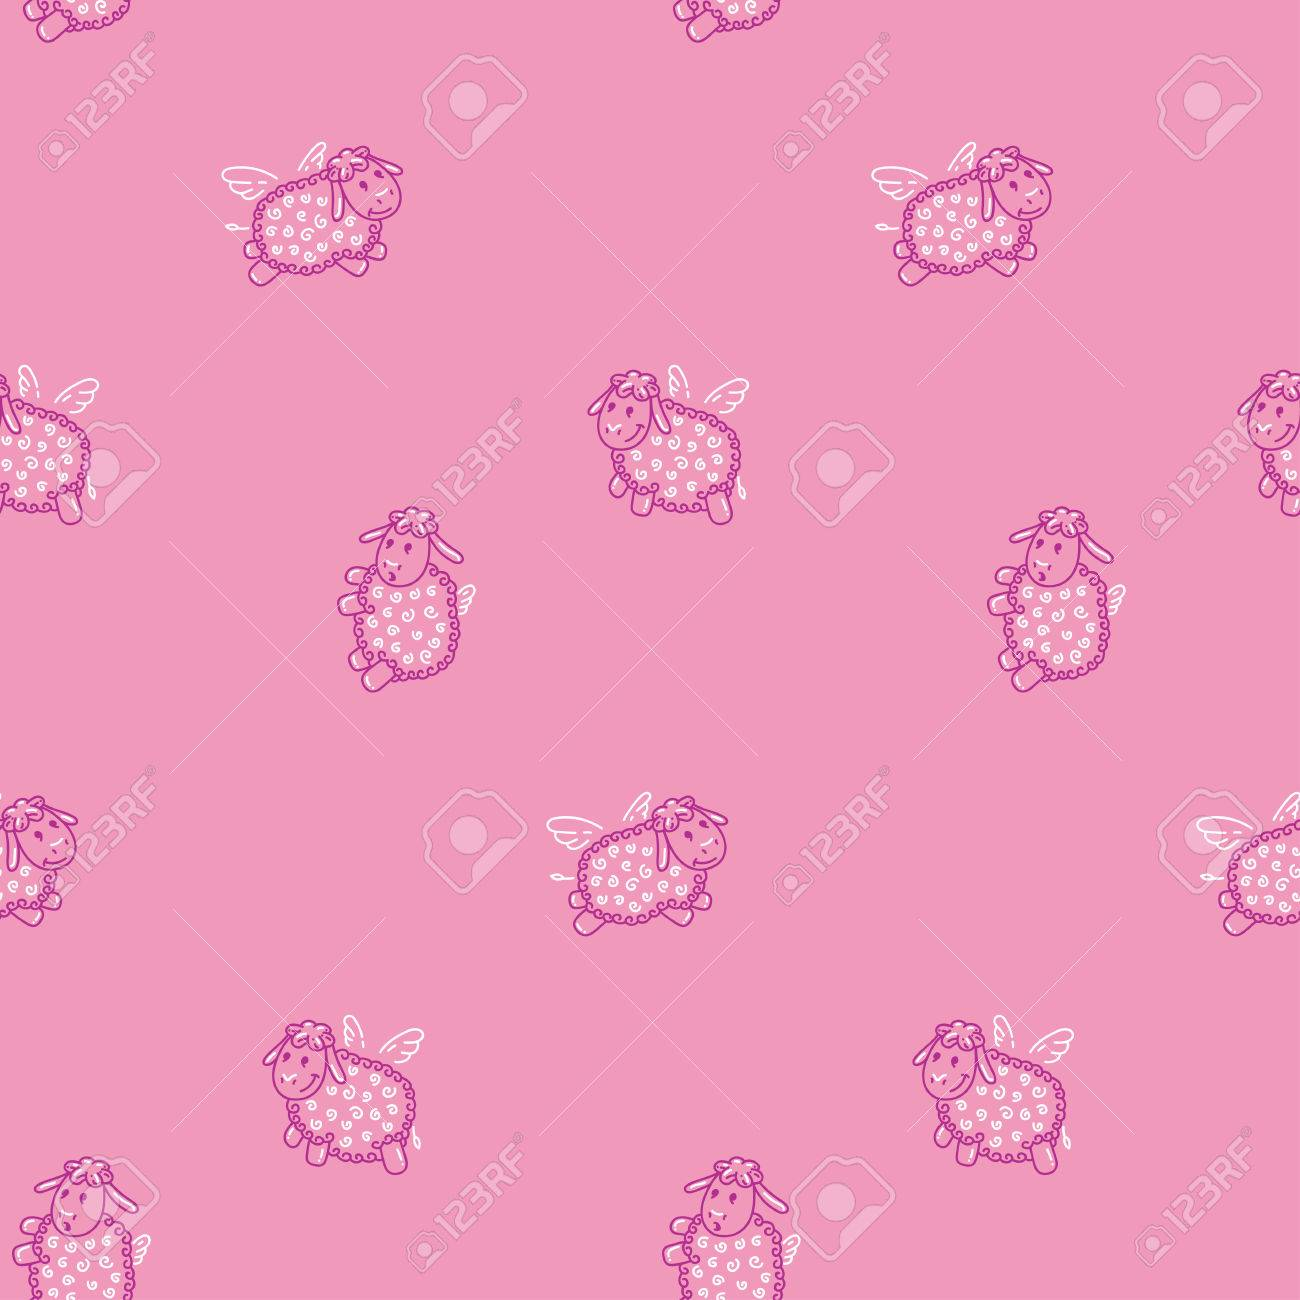 Children\'s pattern with animals. Flying sheep. Light and beautiful..